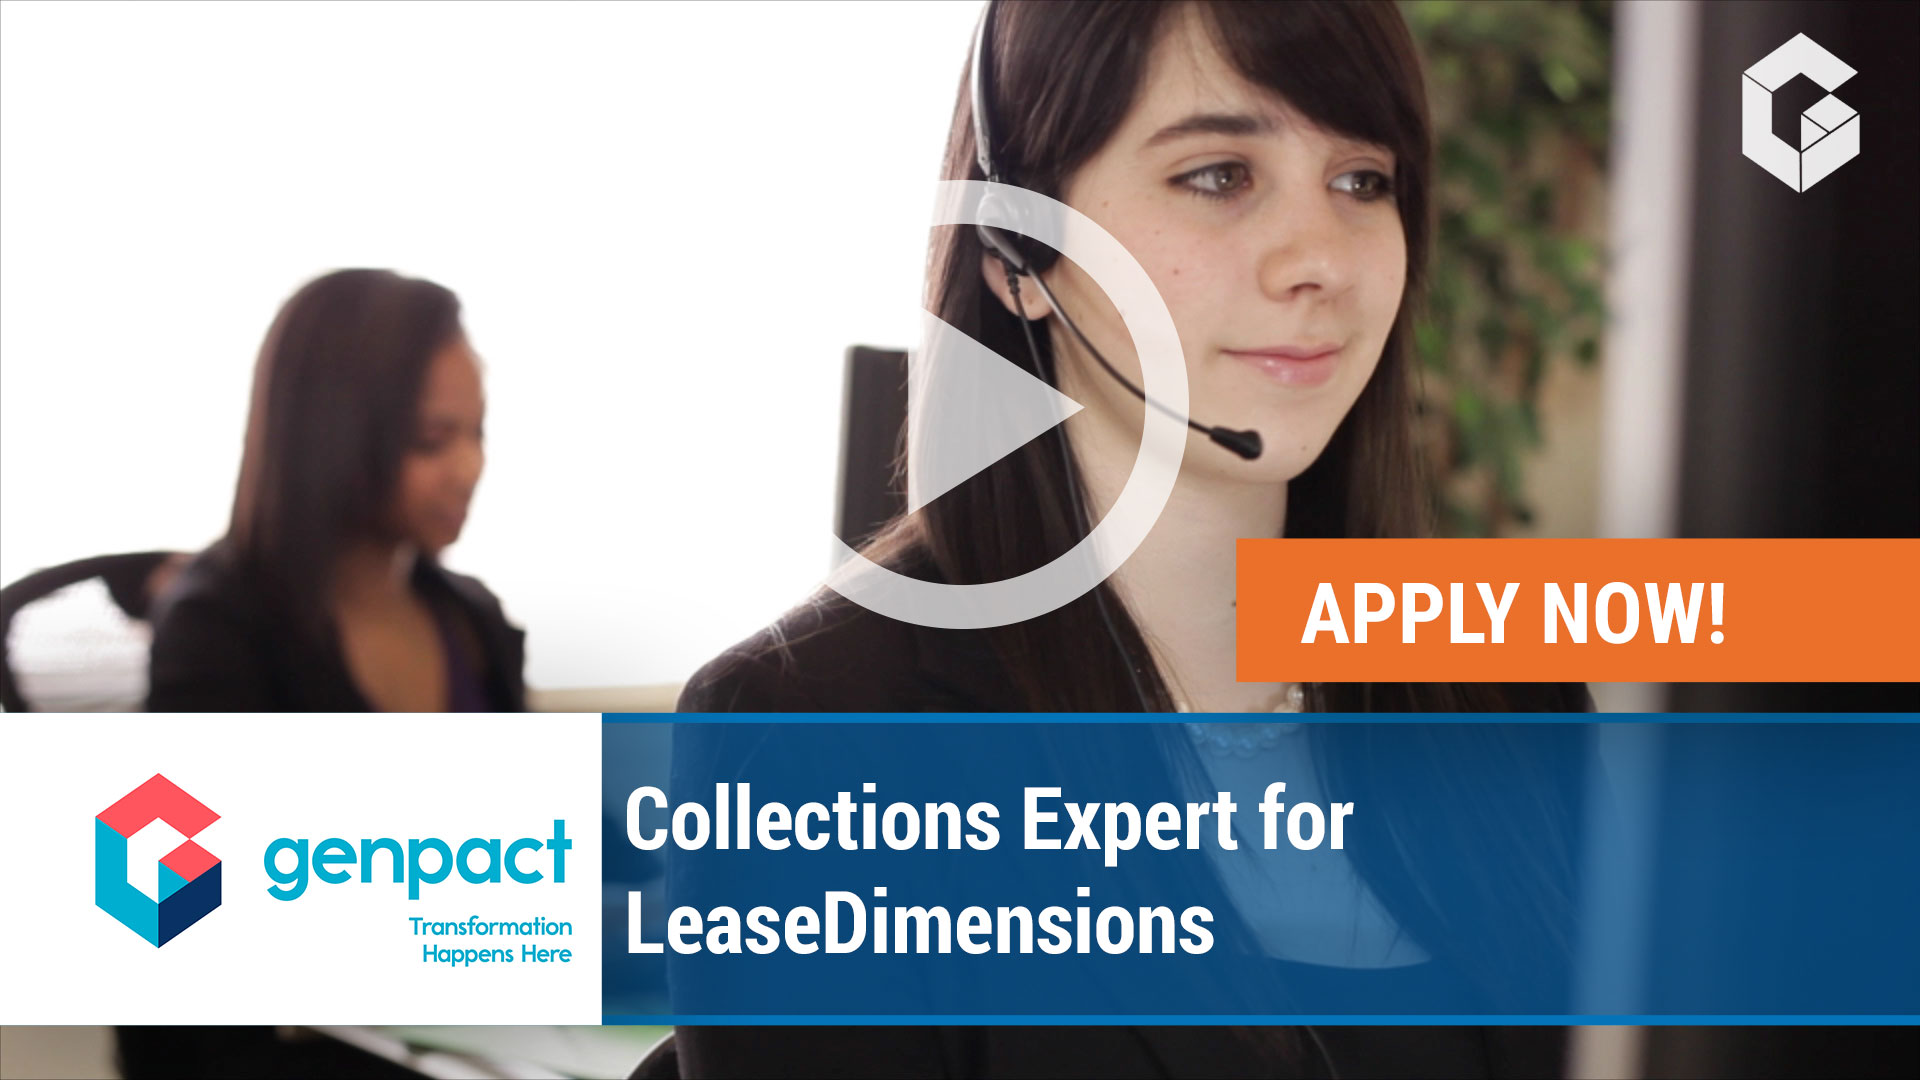 Watch our careers video for available job opening Collections Expert for LeaseDimensions in Portland, Oregon